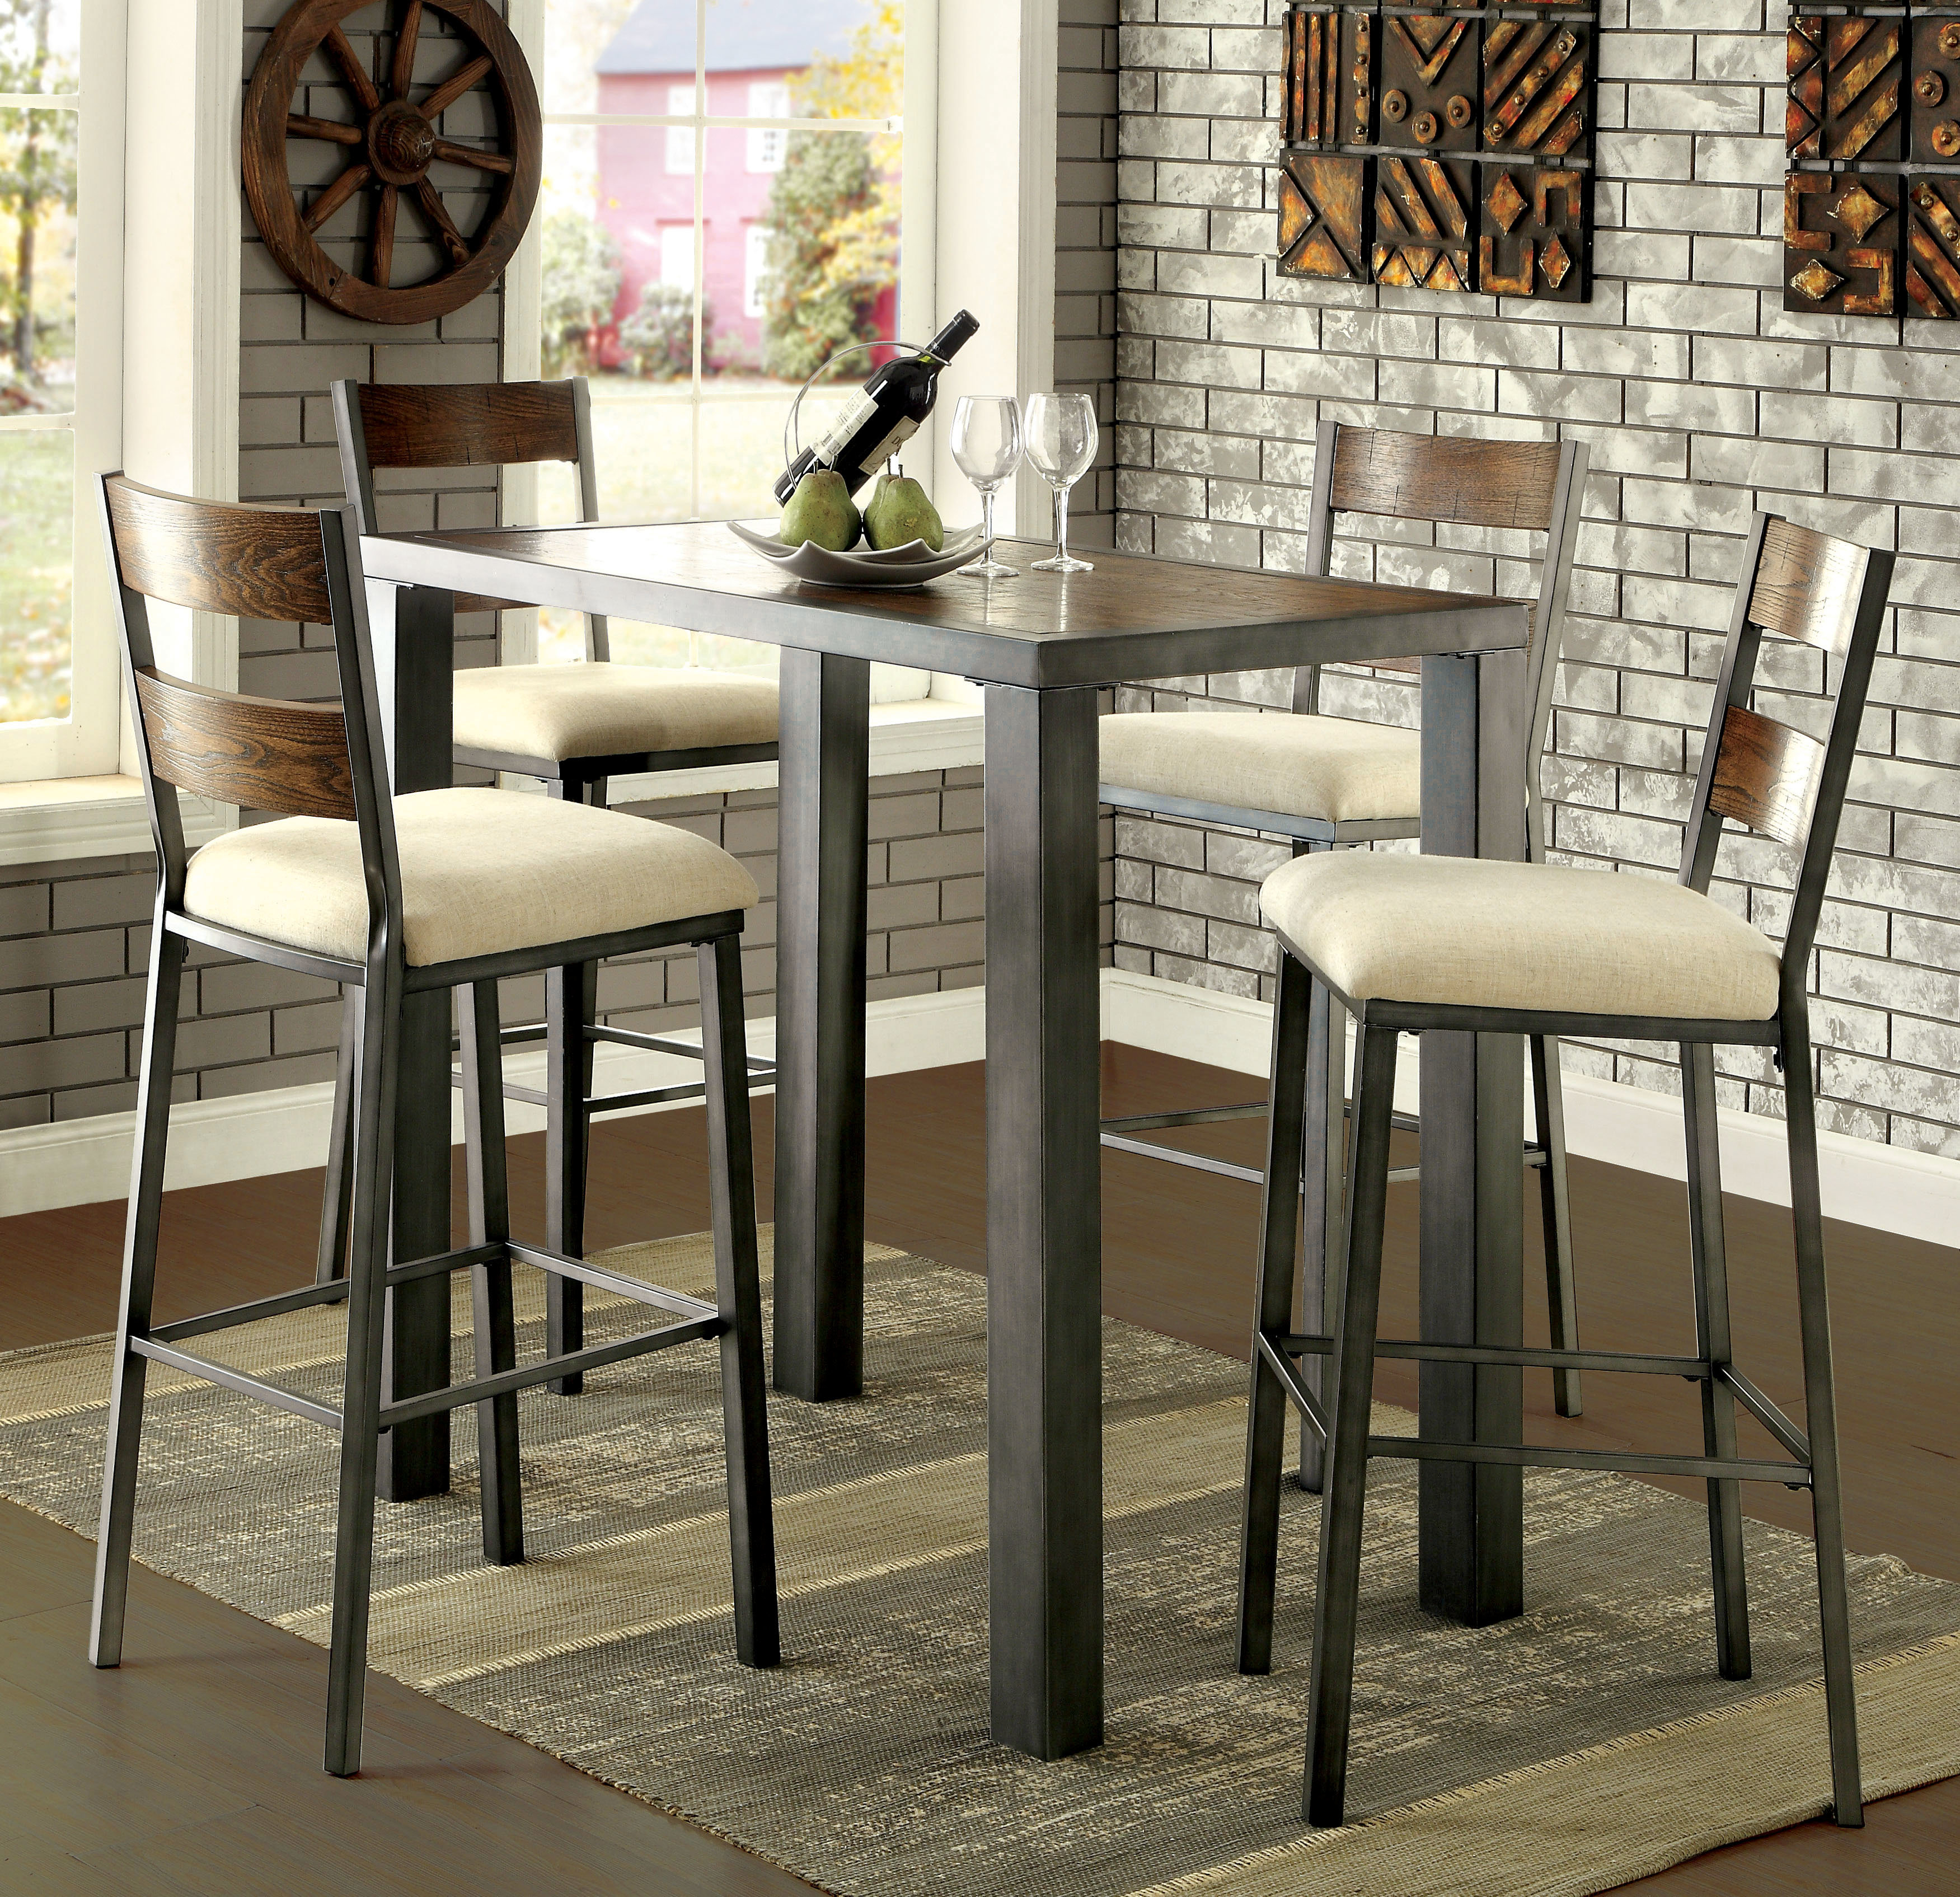 Thurman 5 Piece Pub Table Set In Most Current Bettencourt 3 Piece Counter Height Solid Wood Dining Sets (View 20 of 20)